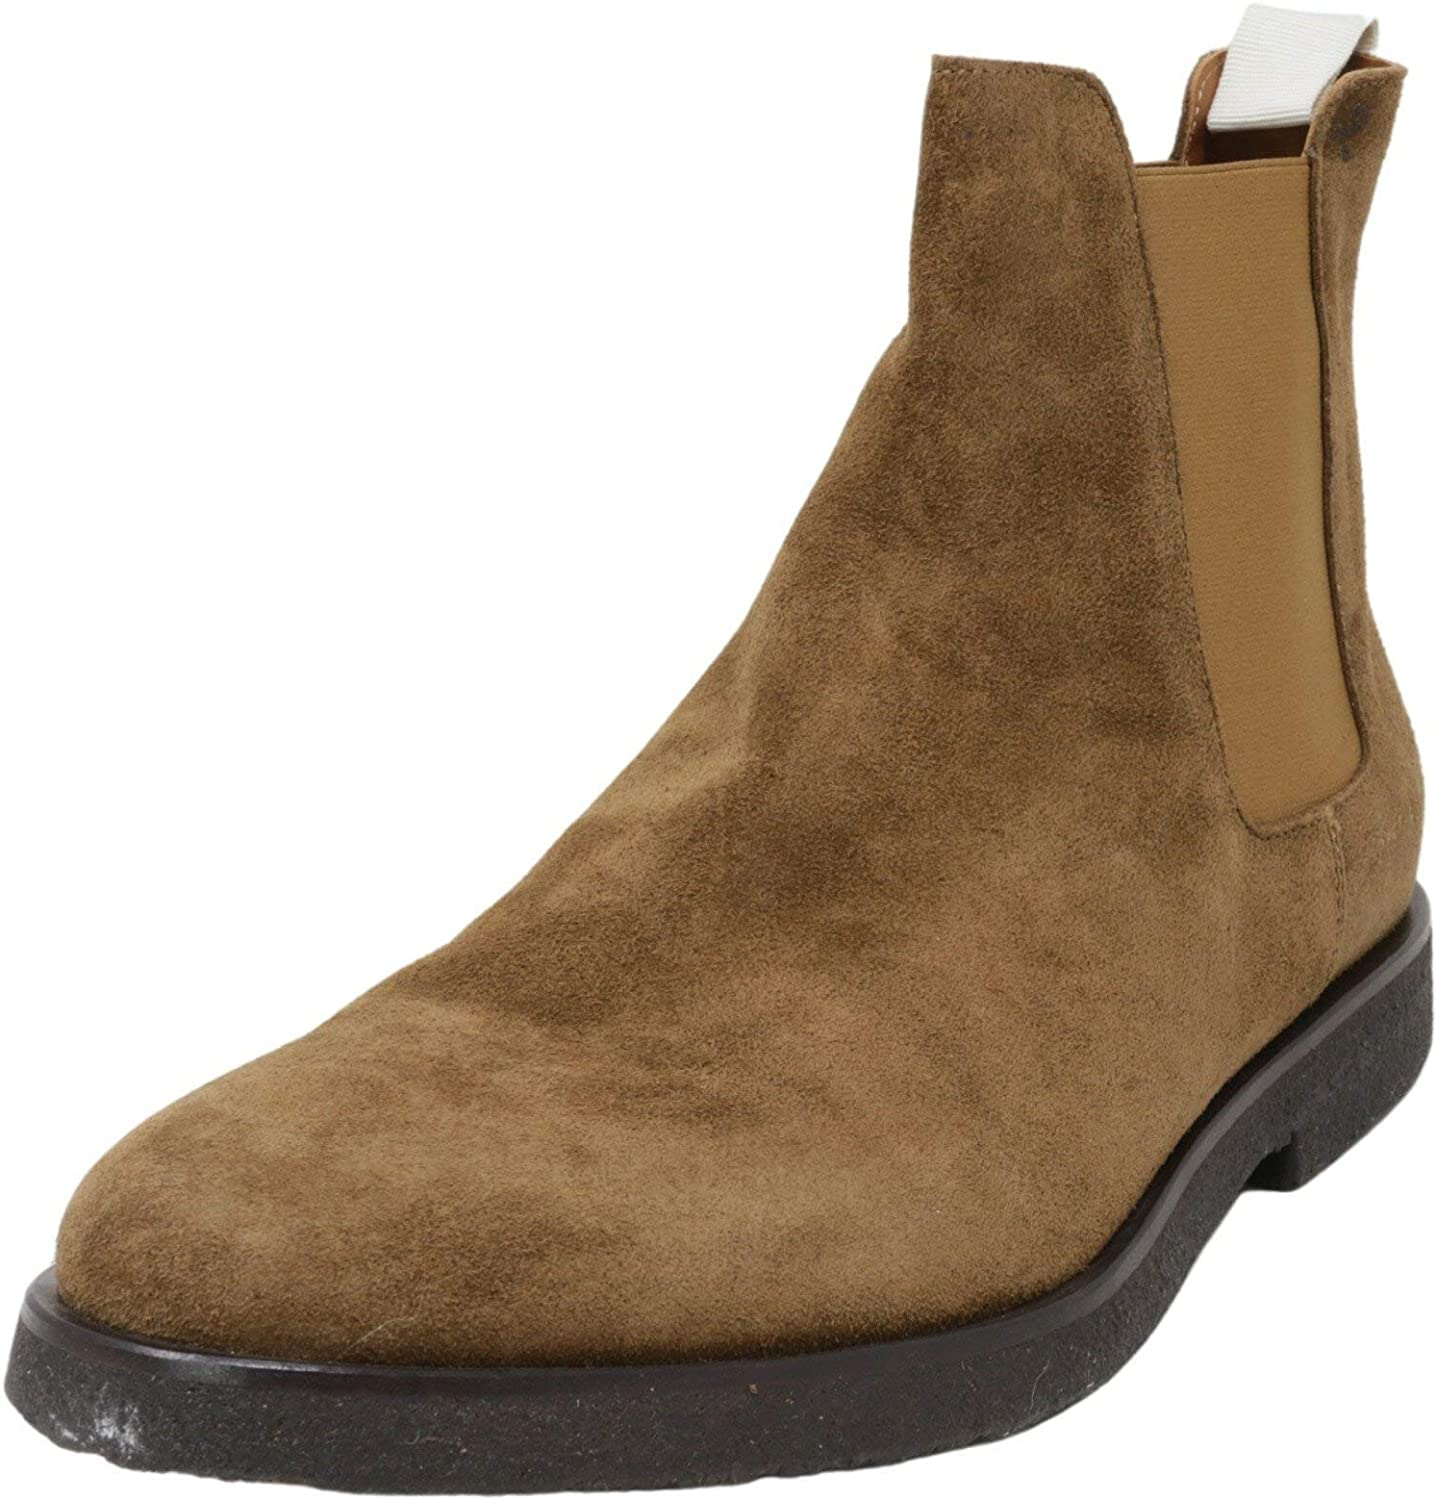 Suede Boot Brown High-Top Leather